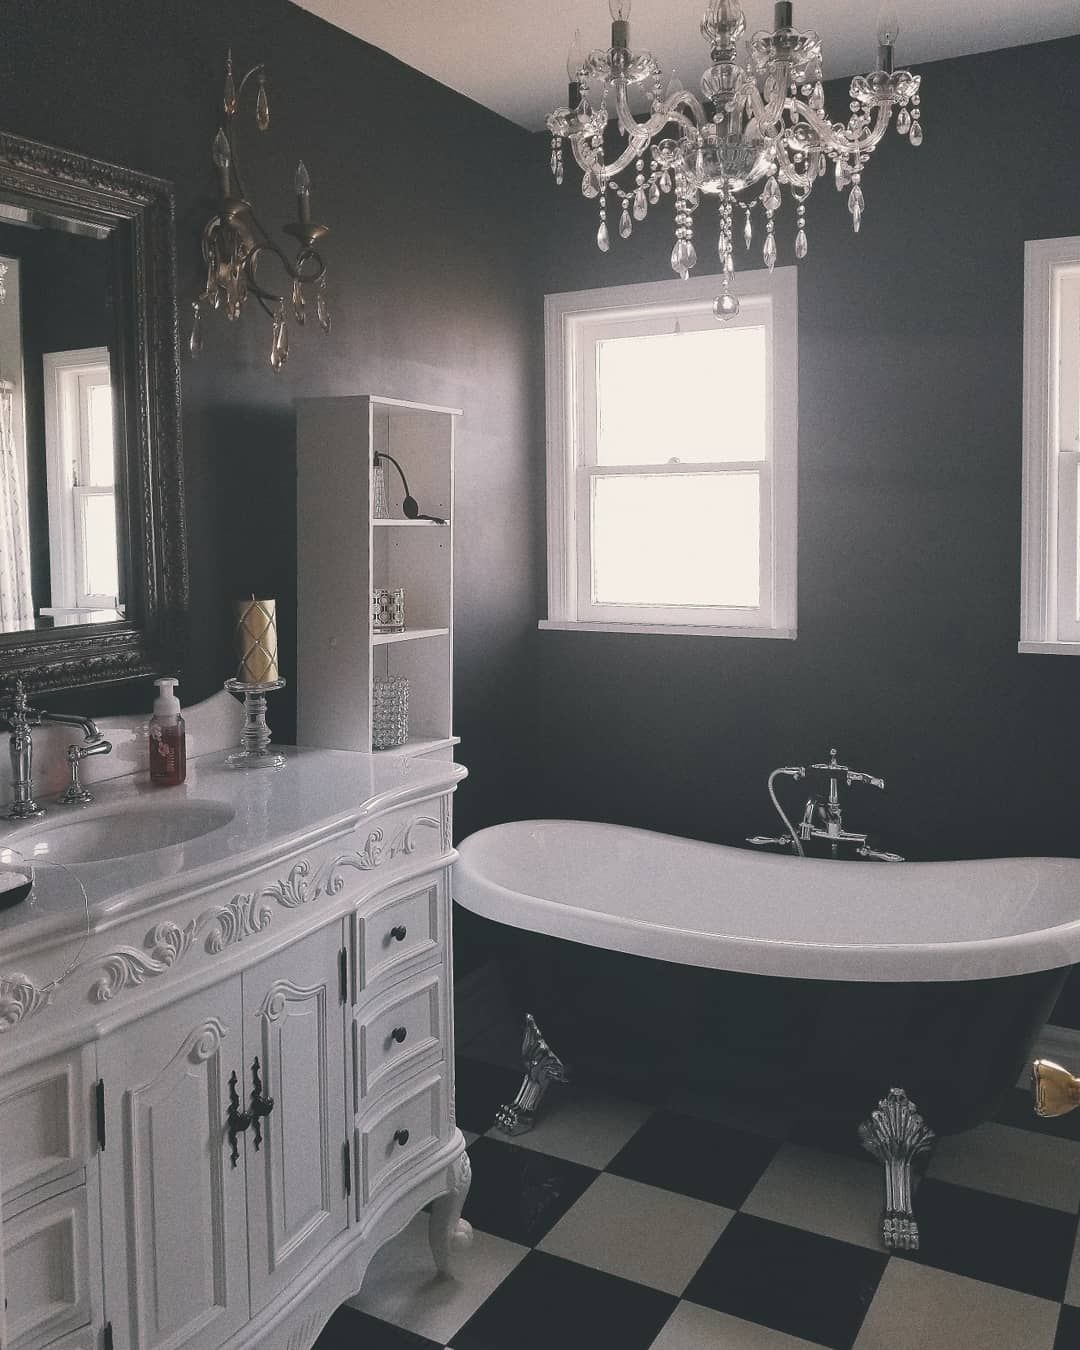 Favourite Bathroom Home Decor: I'd Like To Get Started With My Favorite Room In The House